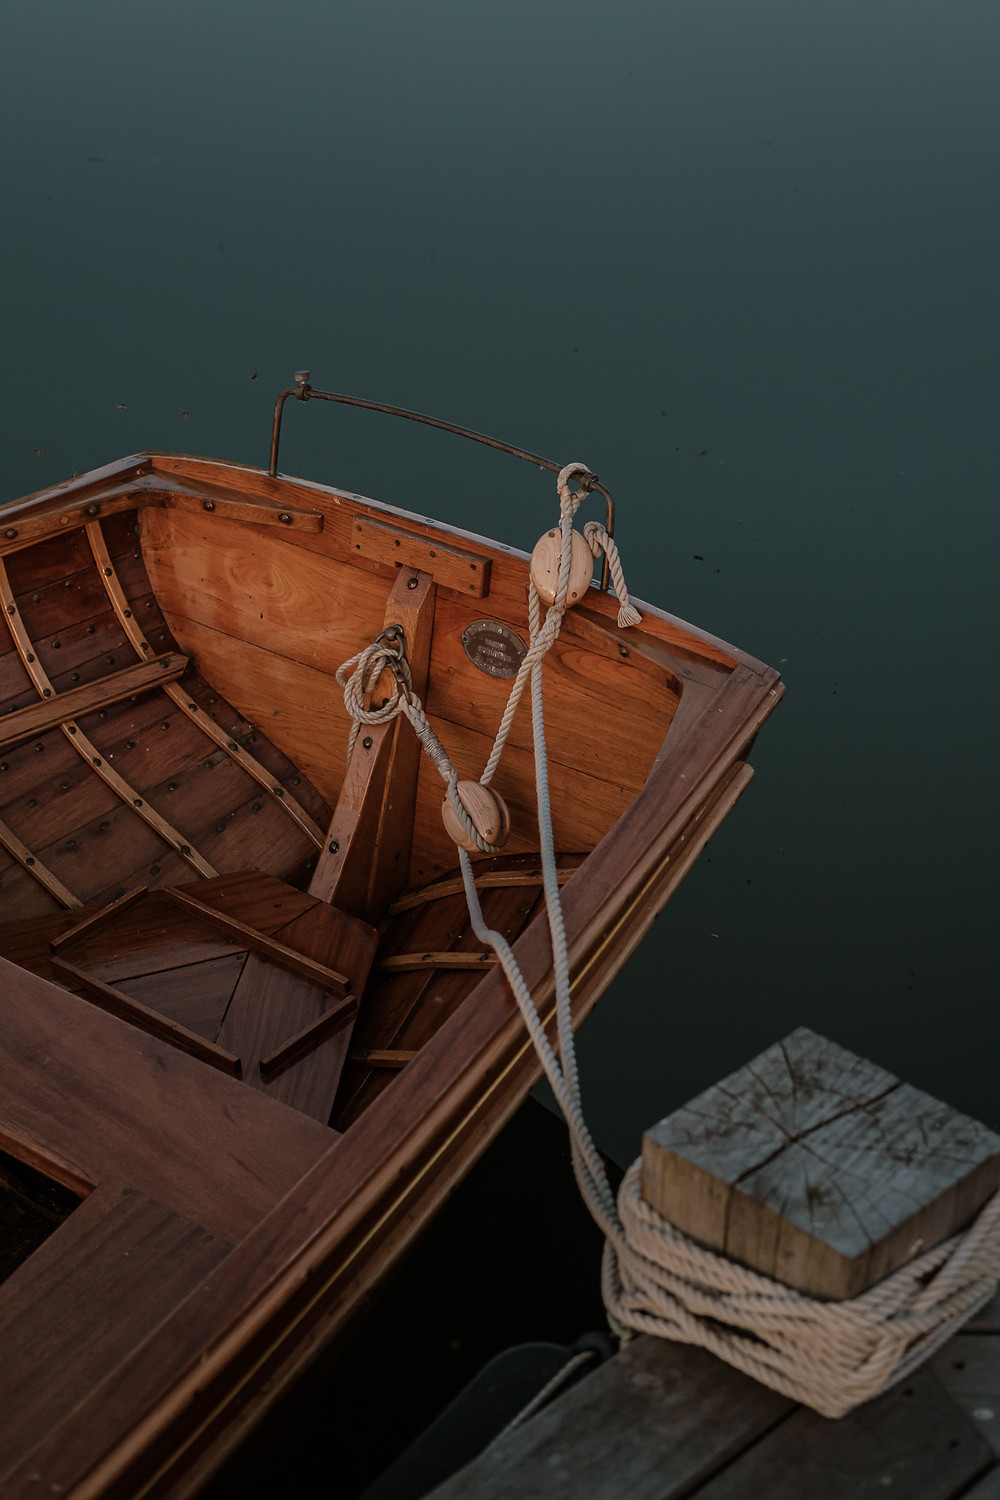 A wooden boat in a lake during summer